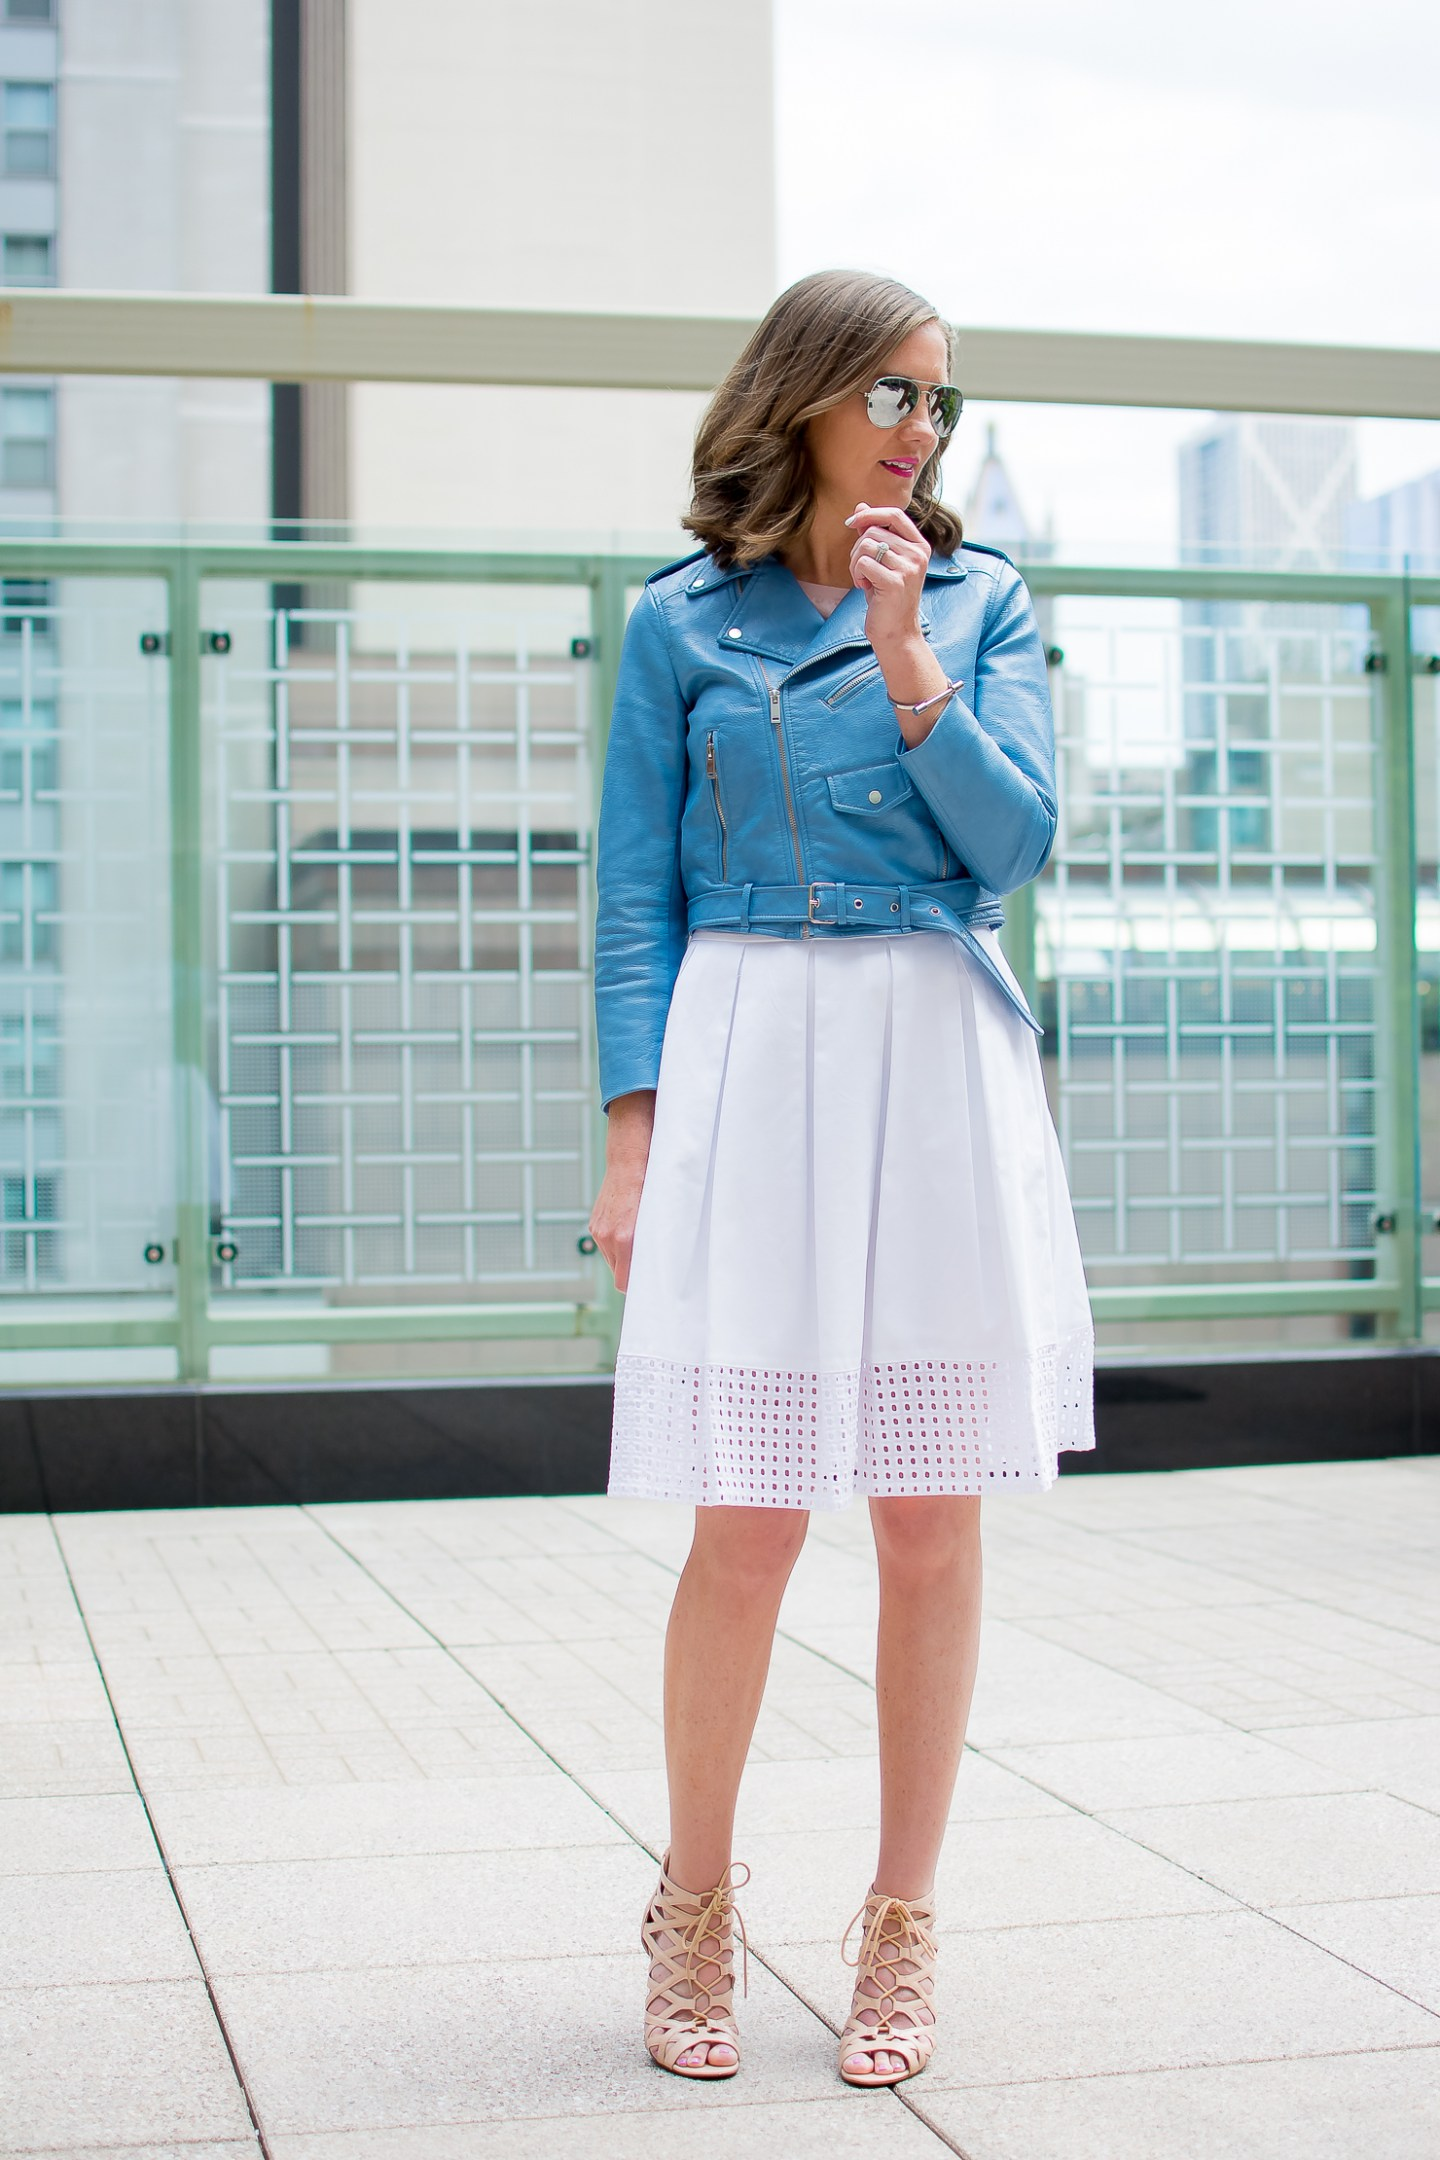 zara-blue-cropped-moto-jacket-white-eyelet-midi-skirt-chicago-terrace-lace-up-heels-peninsula-hotel